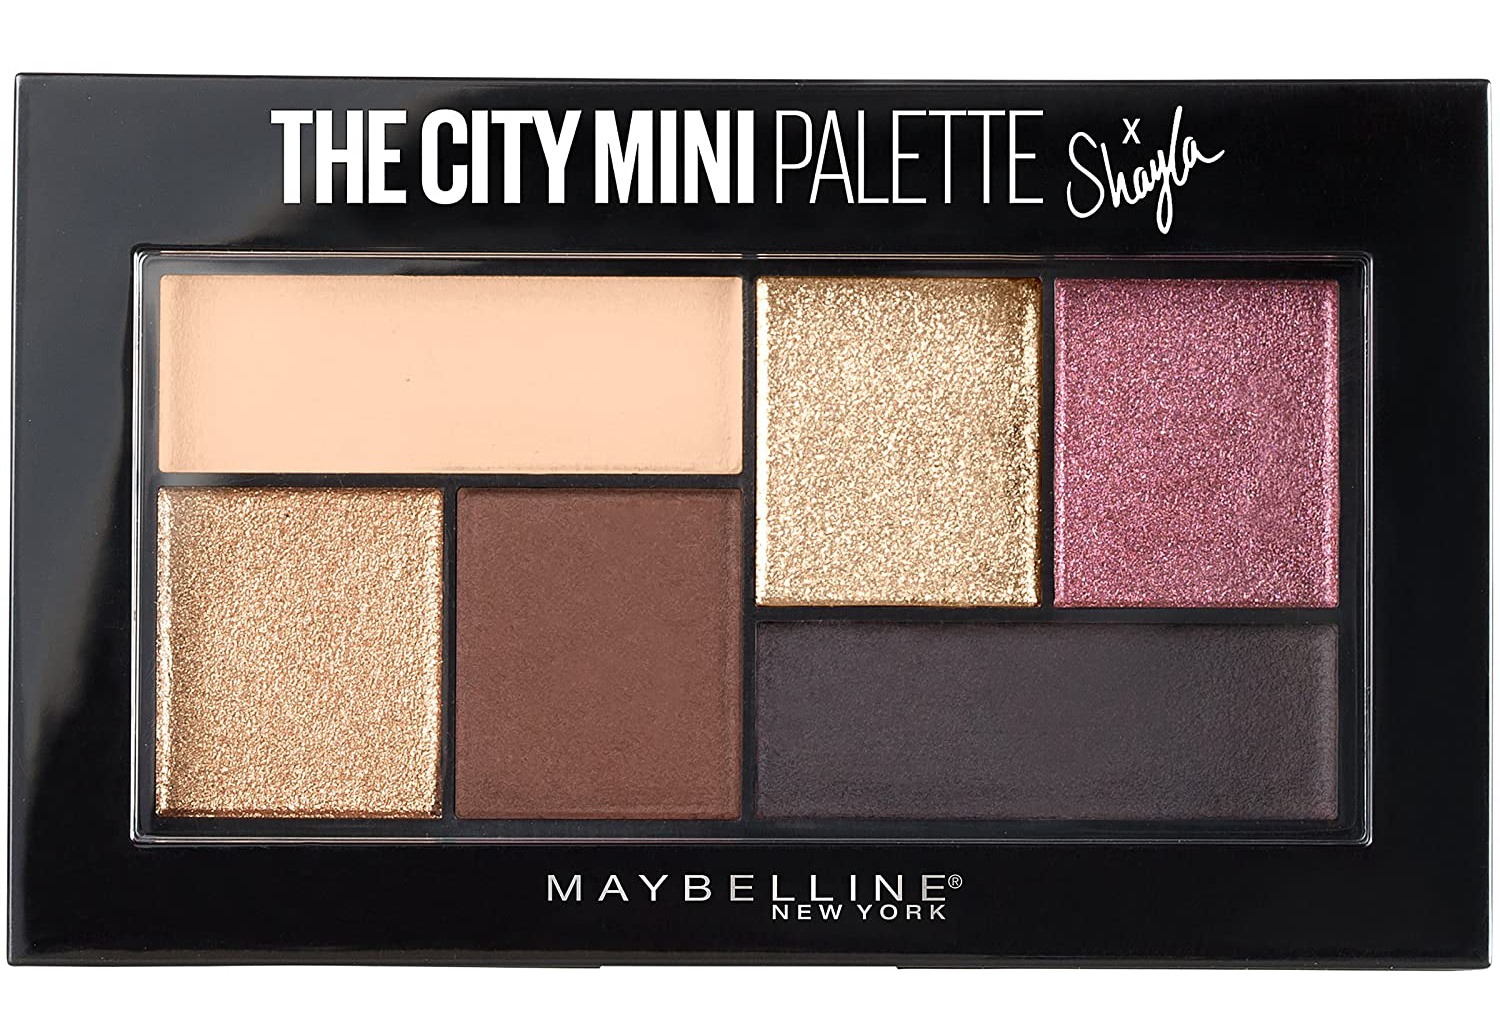 Maybelline The City Mini Eyeshadow Palette X Shayla